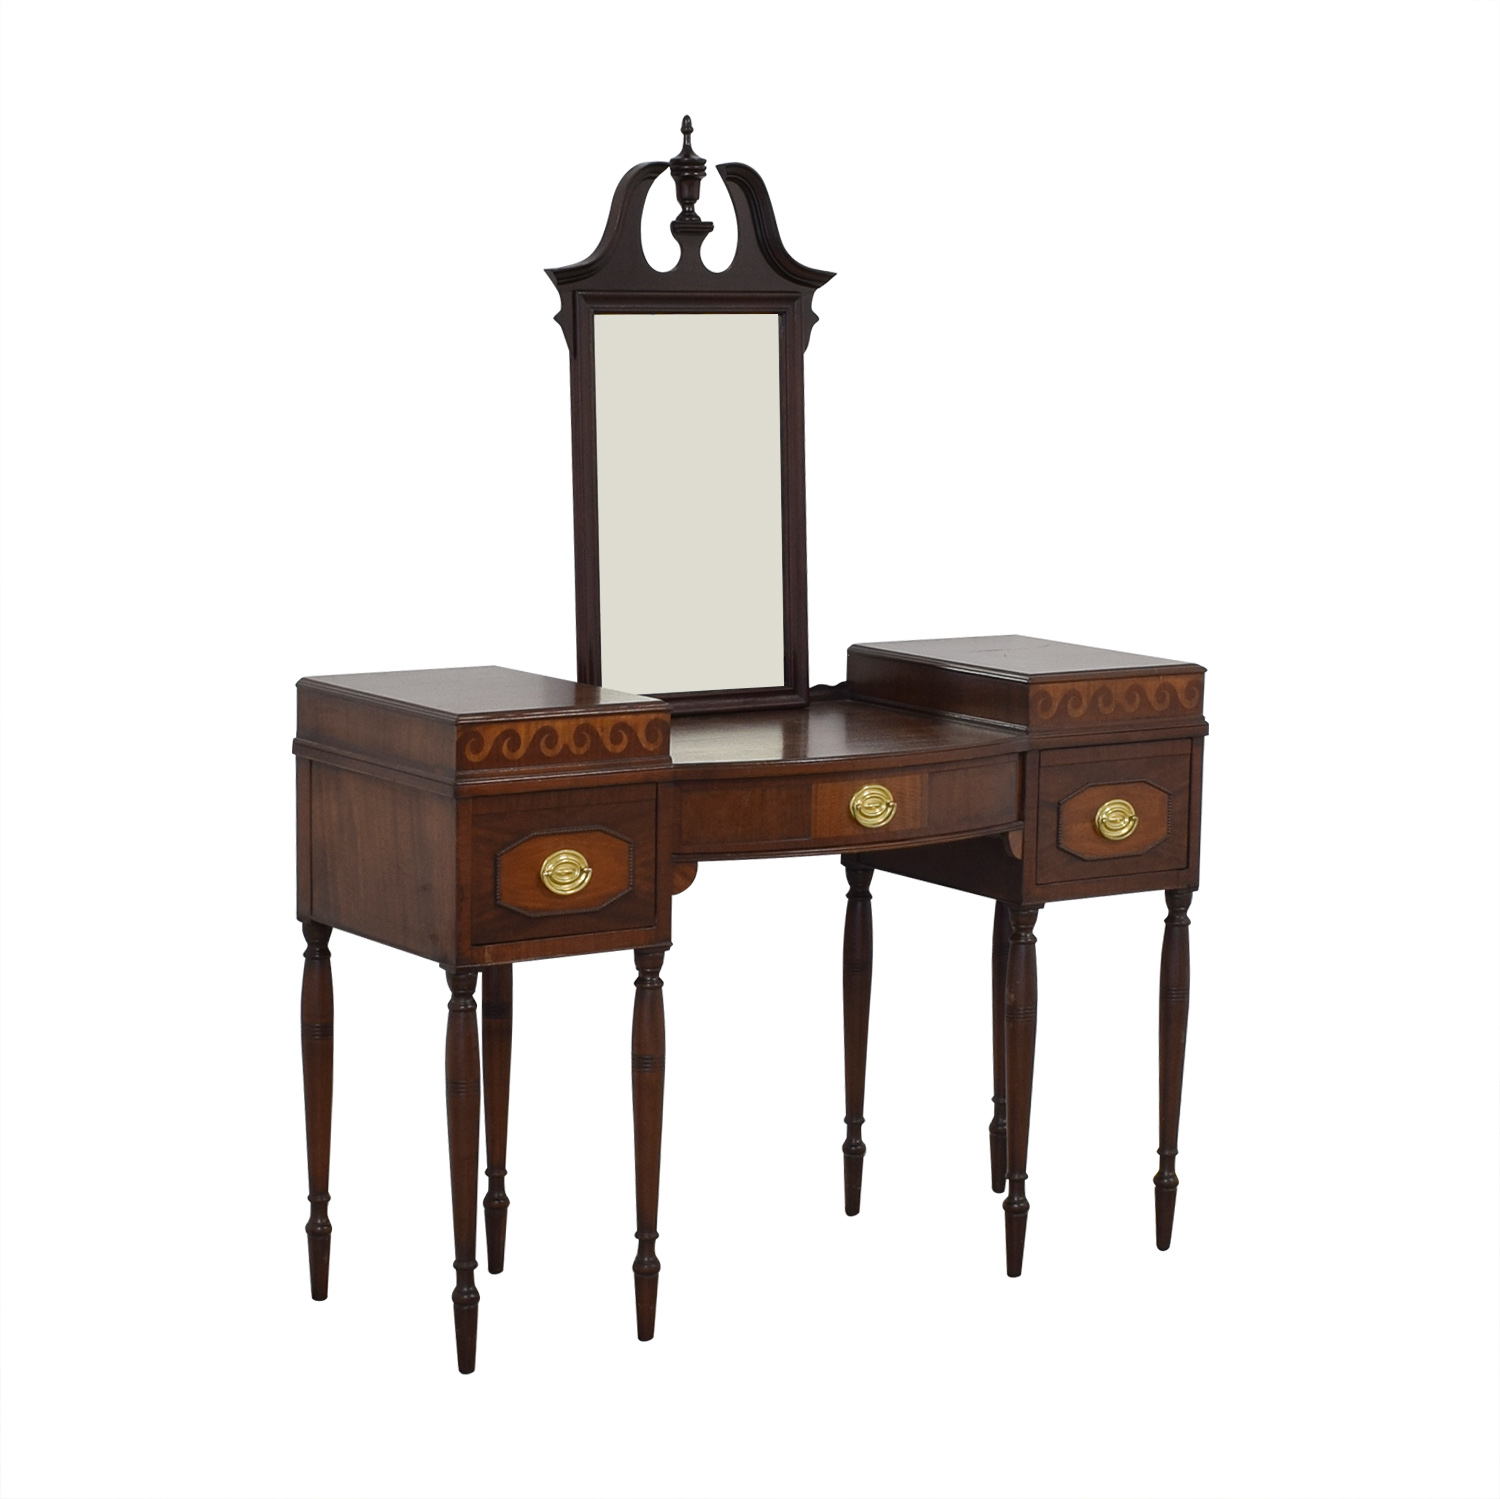 Dressing Table with Mirror second hand